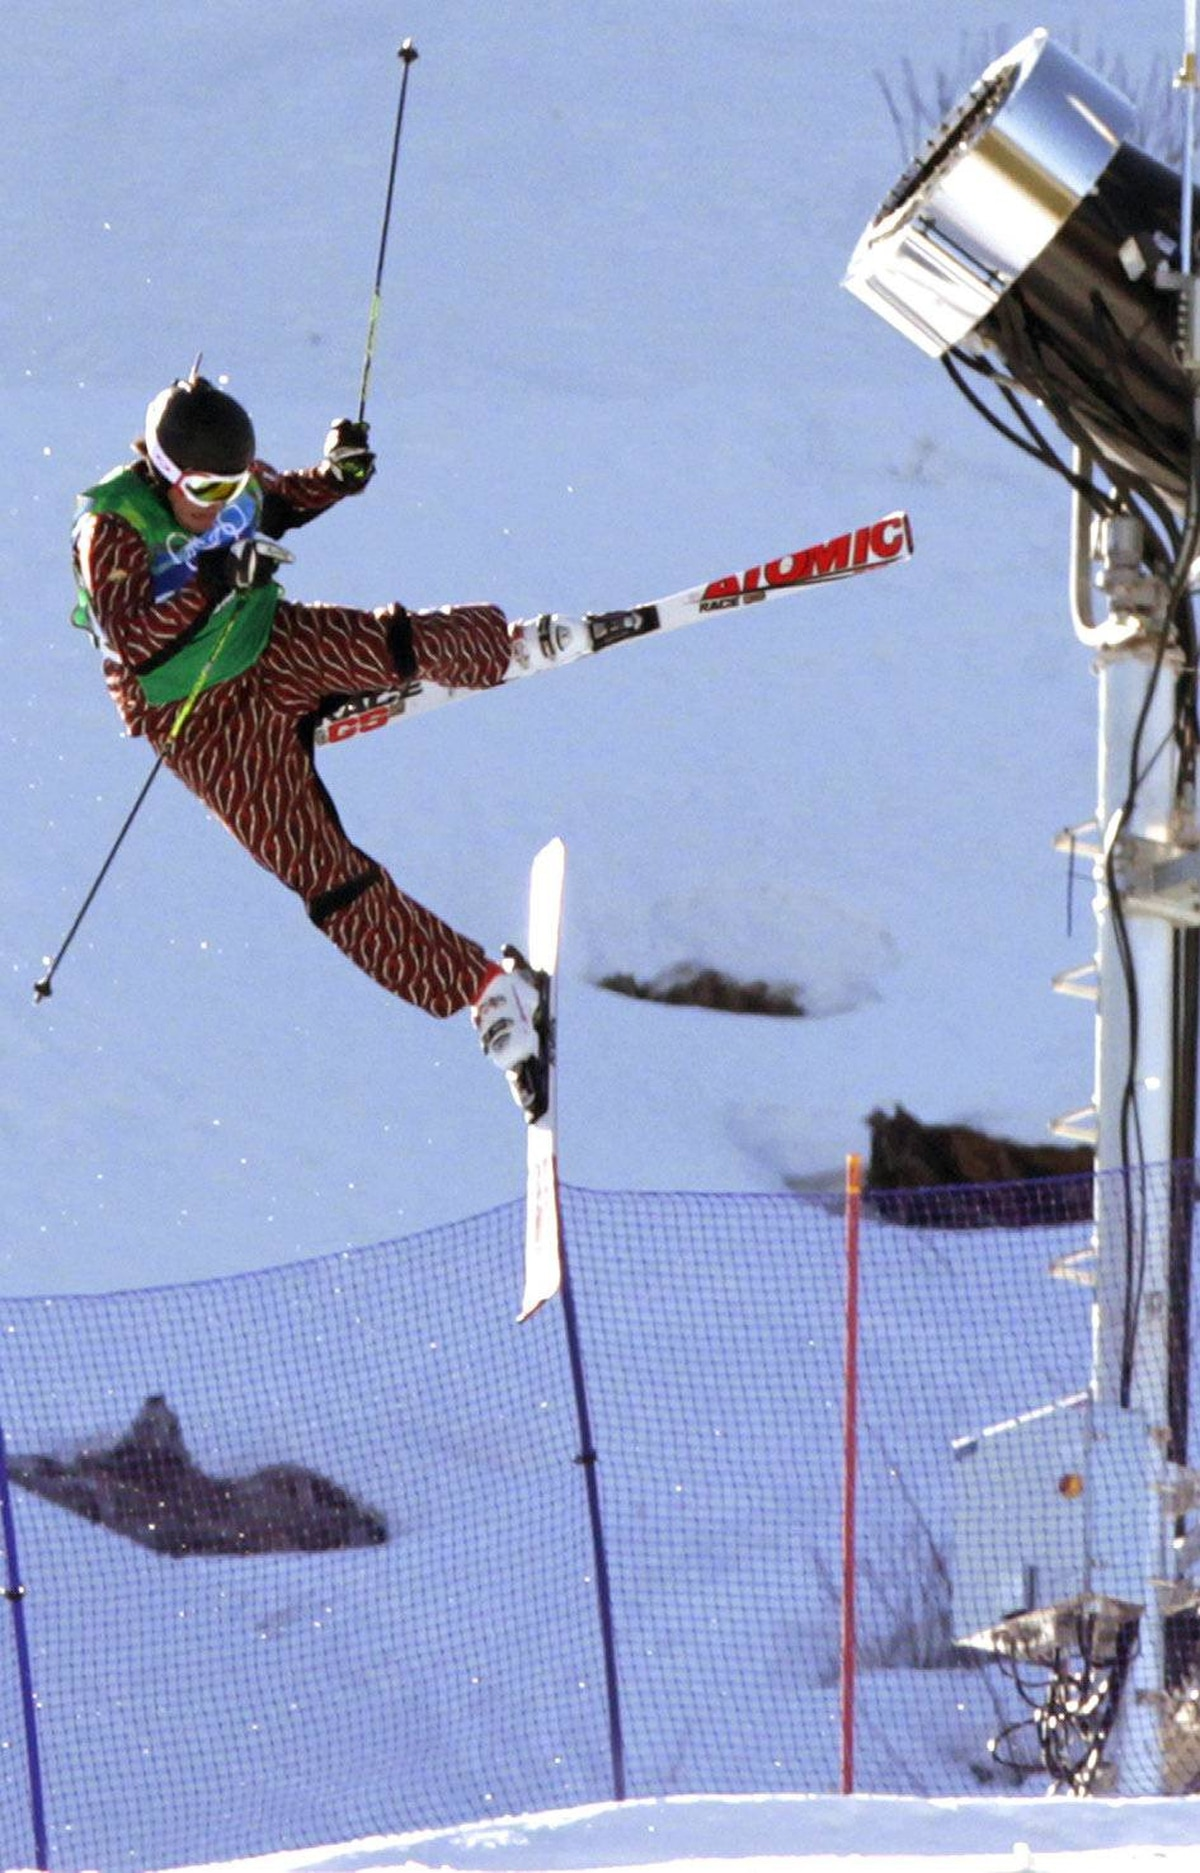 Christopher Del Bosco, of Canada, loses control in the air and crashes and finishes in fourth place during the men's ski cross final at Cypress Mountain in West Vancouver, B.C., on Sunday February 21, 2010.